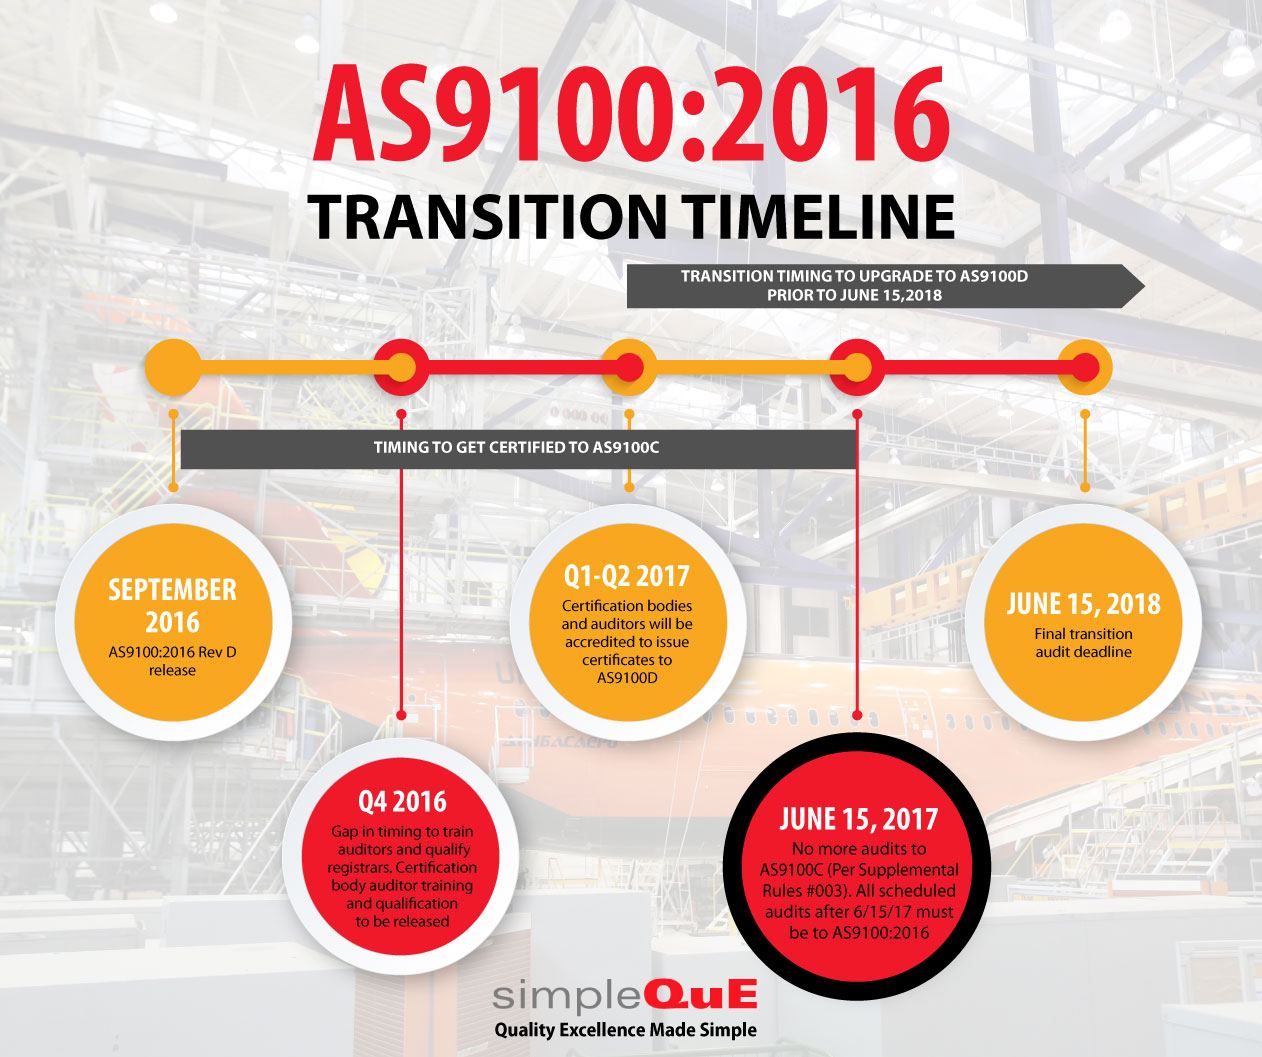 SimpleQuE shares an important AS9100:2016 transition timeline reminder from IAQG